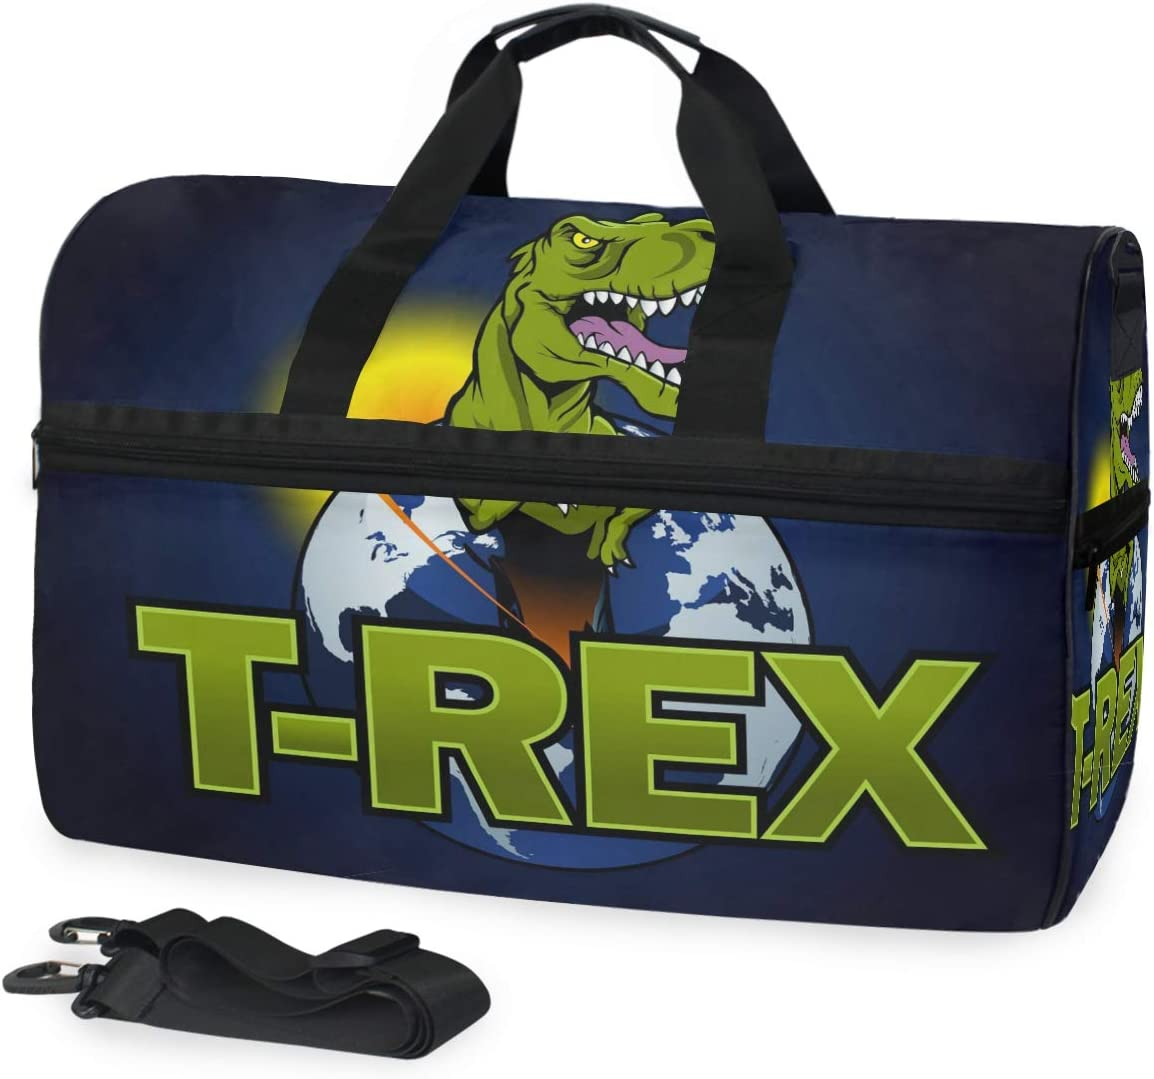 Dinosaur The Planet Sports Gym Bag with Shoes Compartment Travel Duffel Bag for Men and Women